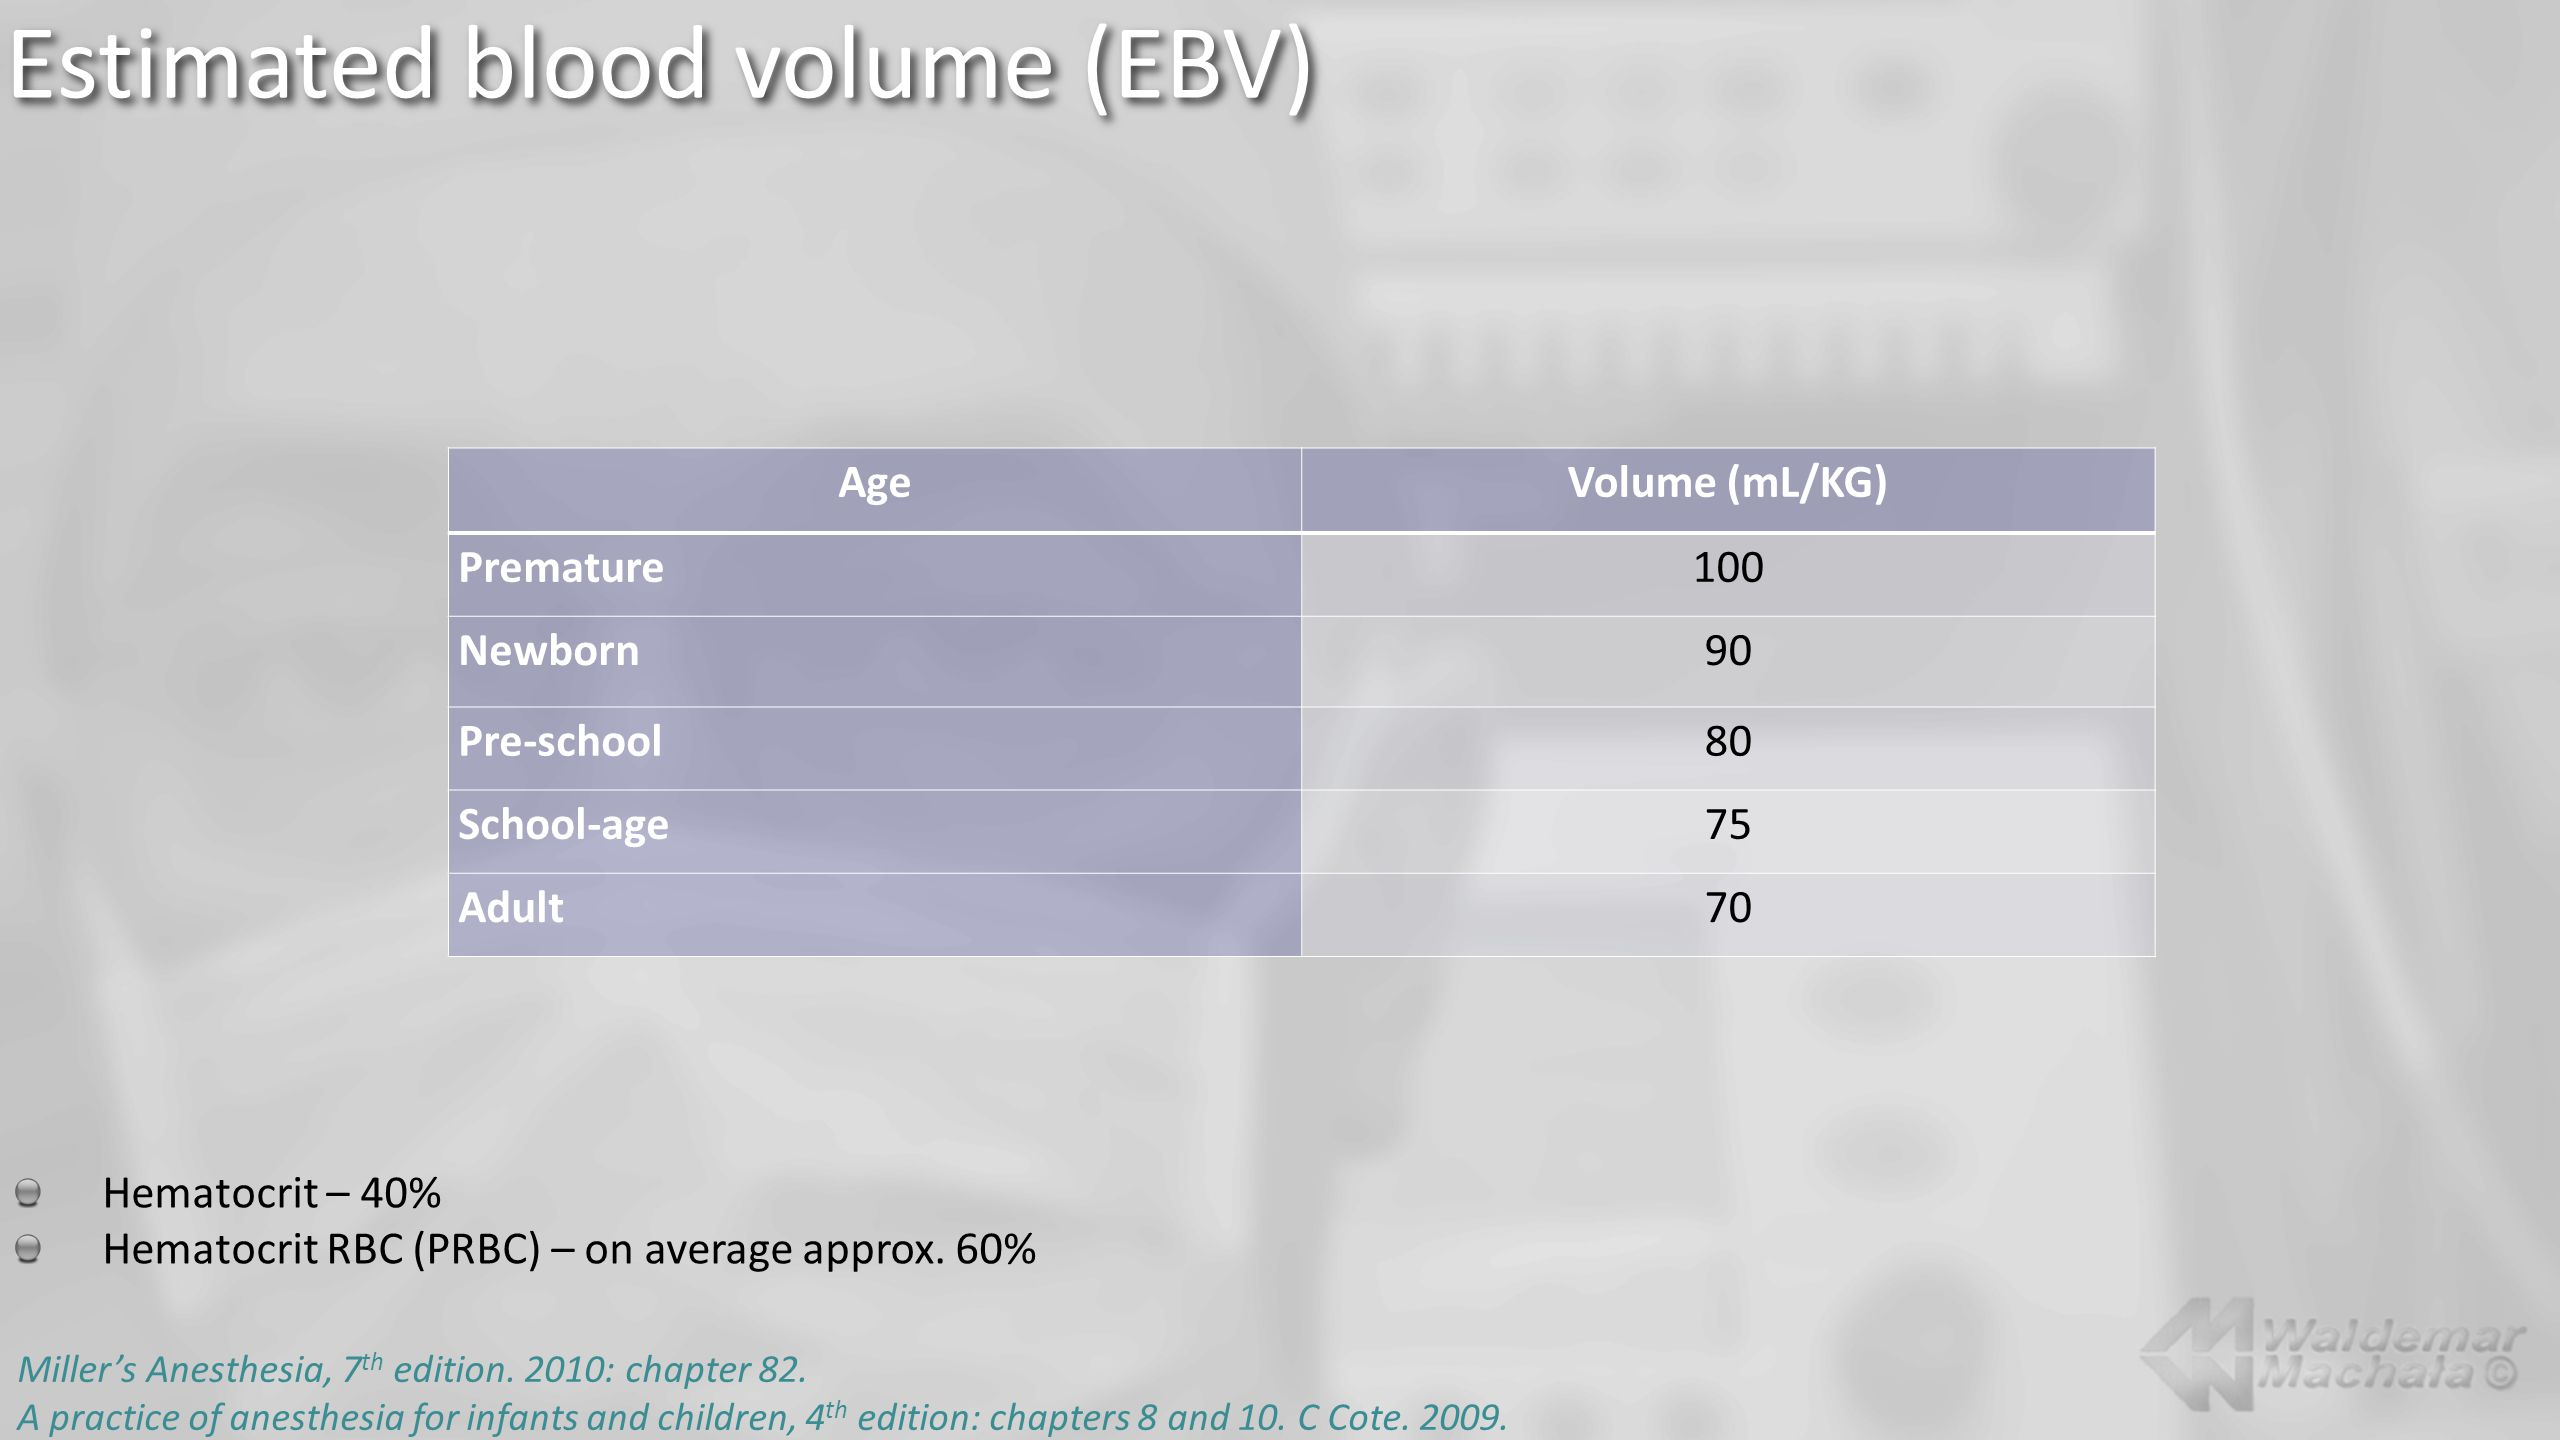 Estimated blood volume (EBV) AgeVolume (mL/KG) Premature100 Newborn90 Pre-school80 School-age75 Adult70 Hematocrit – 40% Hematocrit RBC (PRBC) – on average approx.